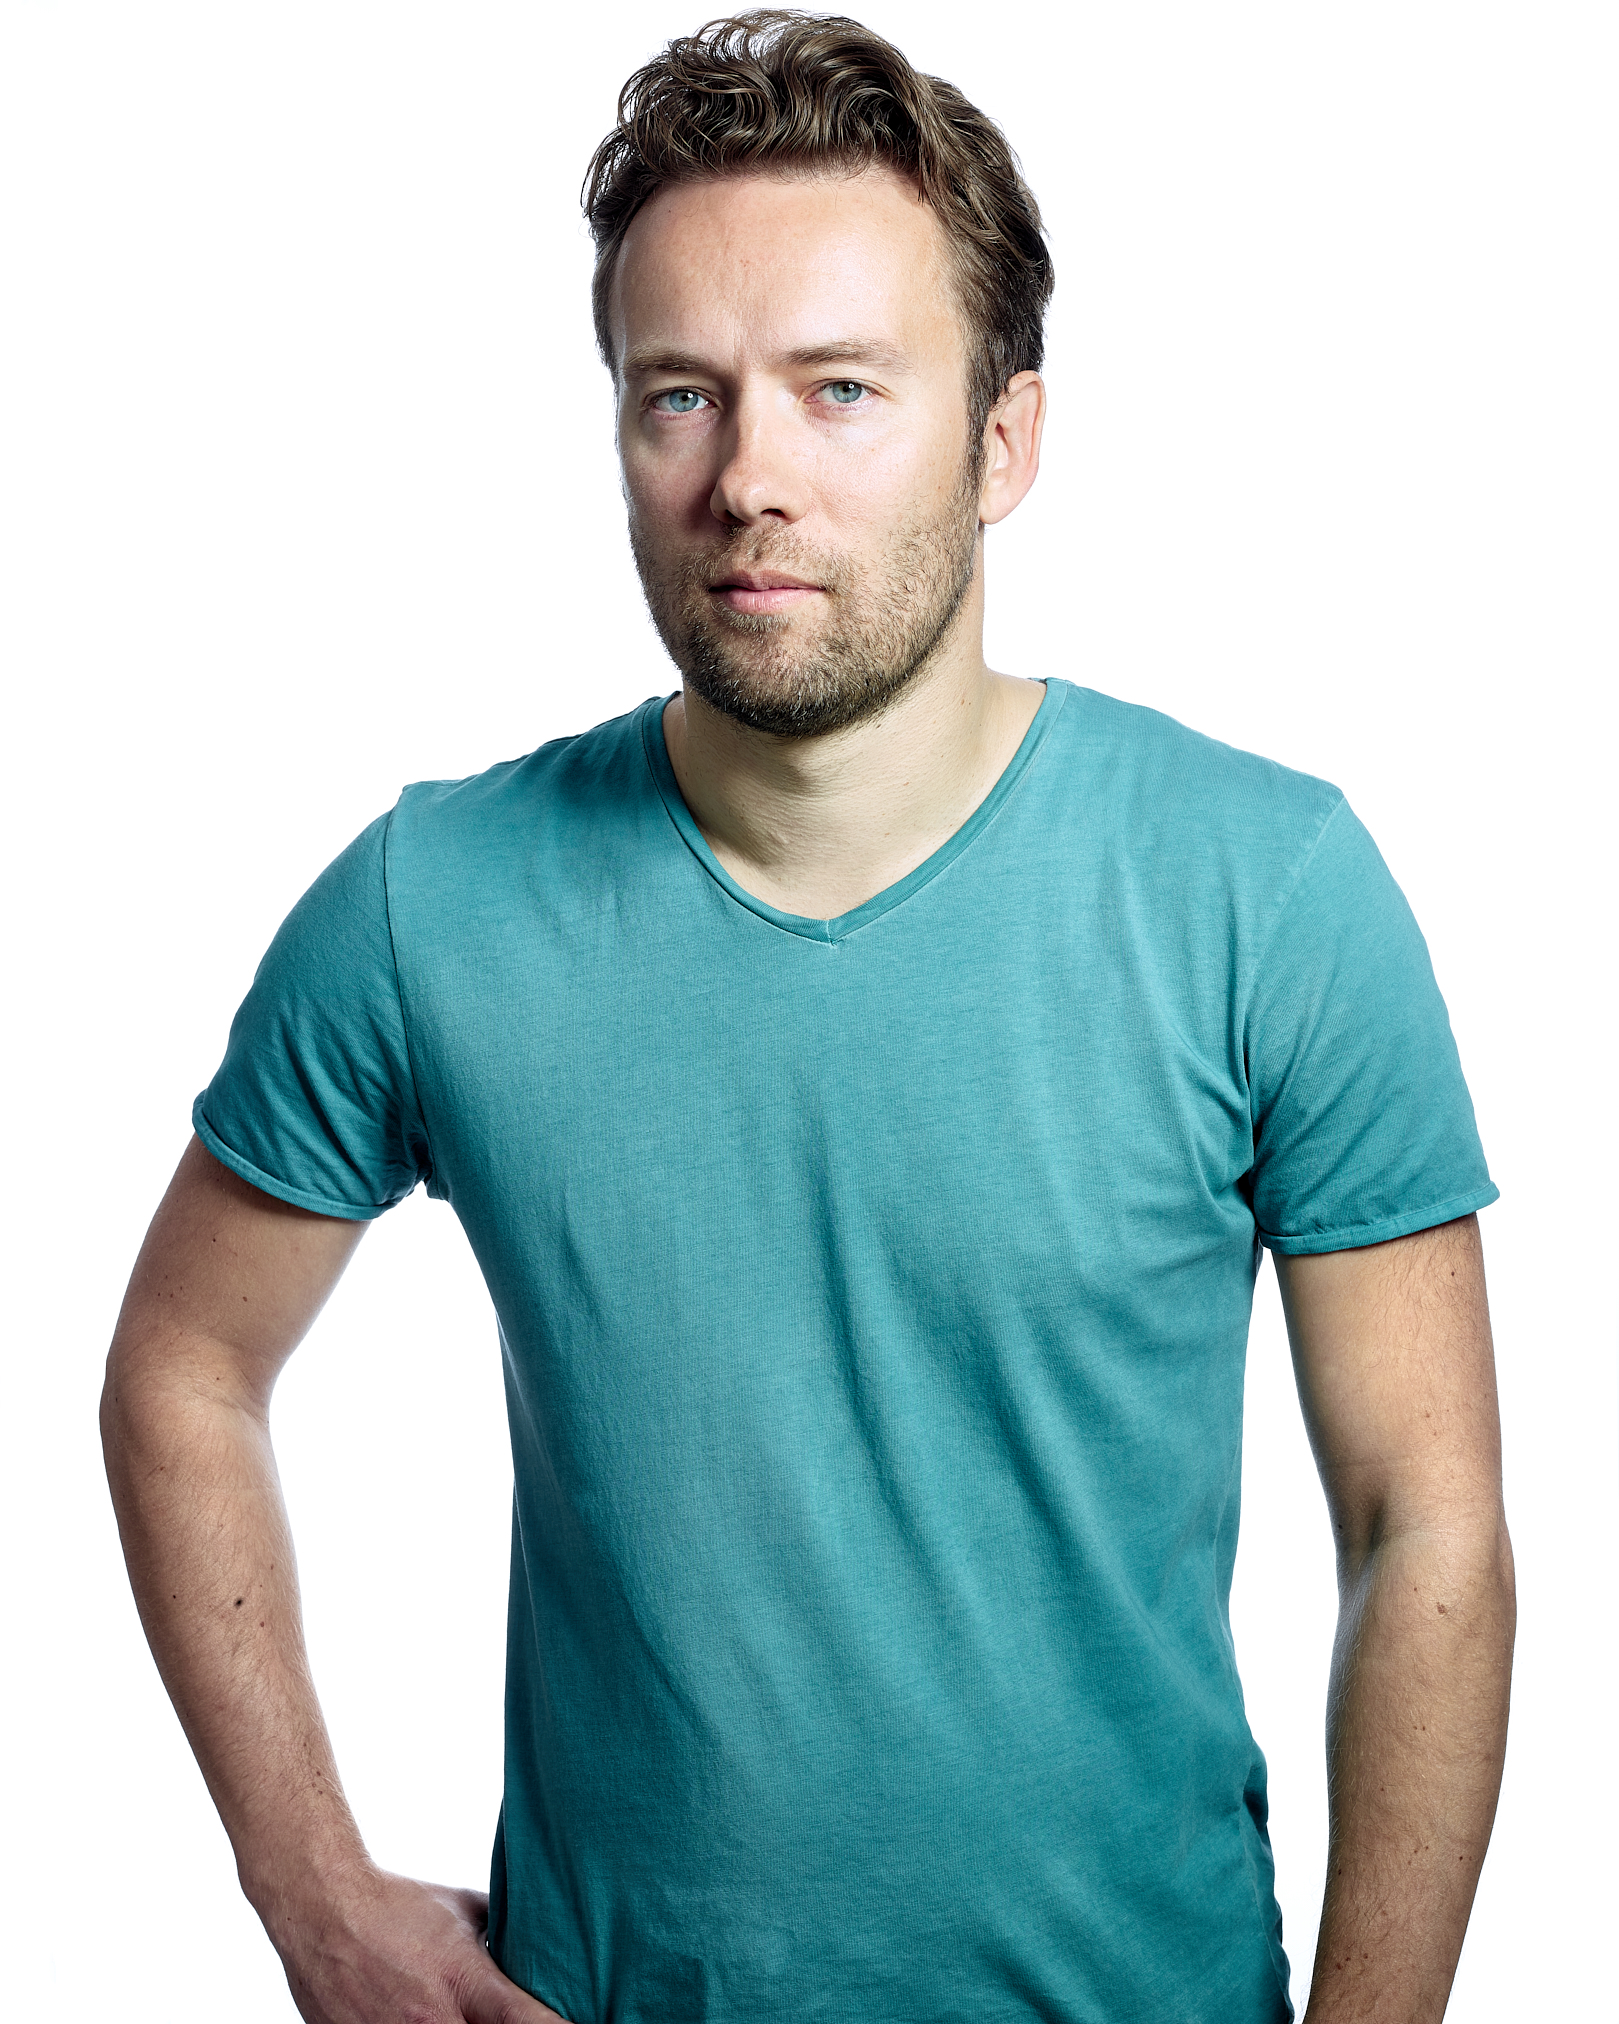 David Heinemeier Hansson by Peter Adams.